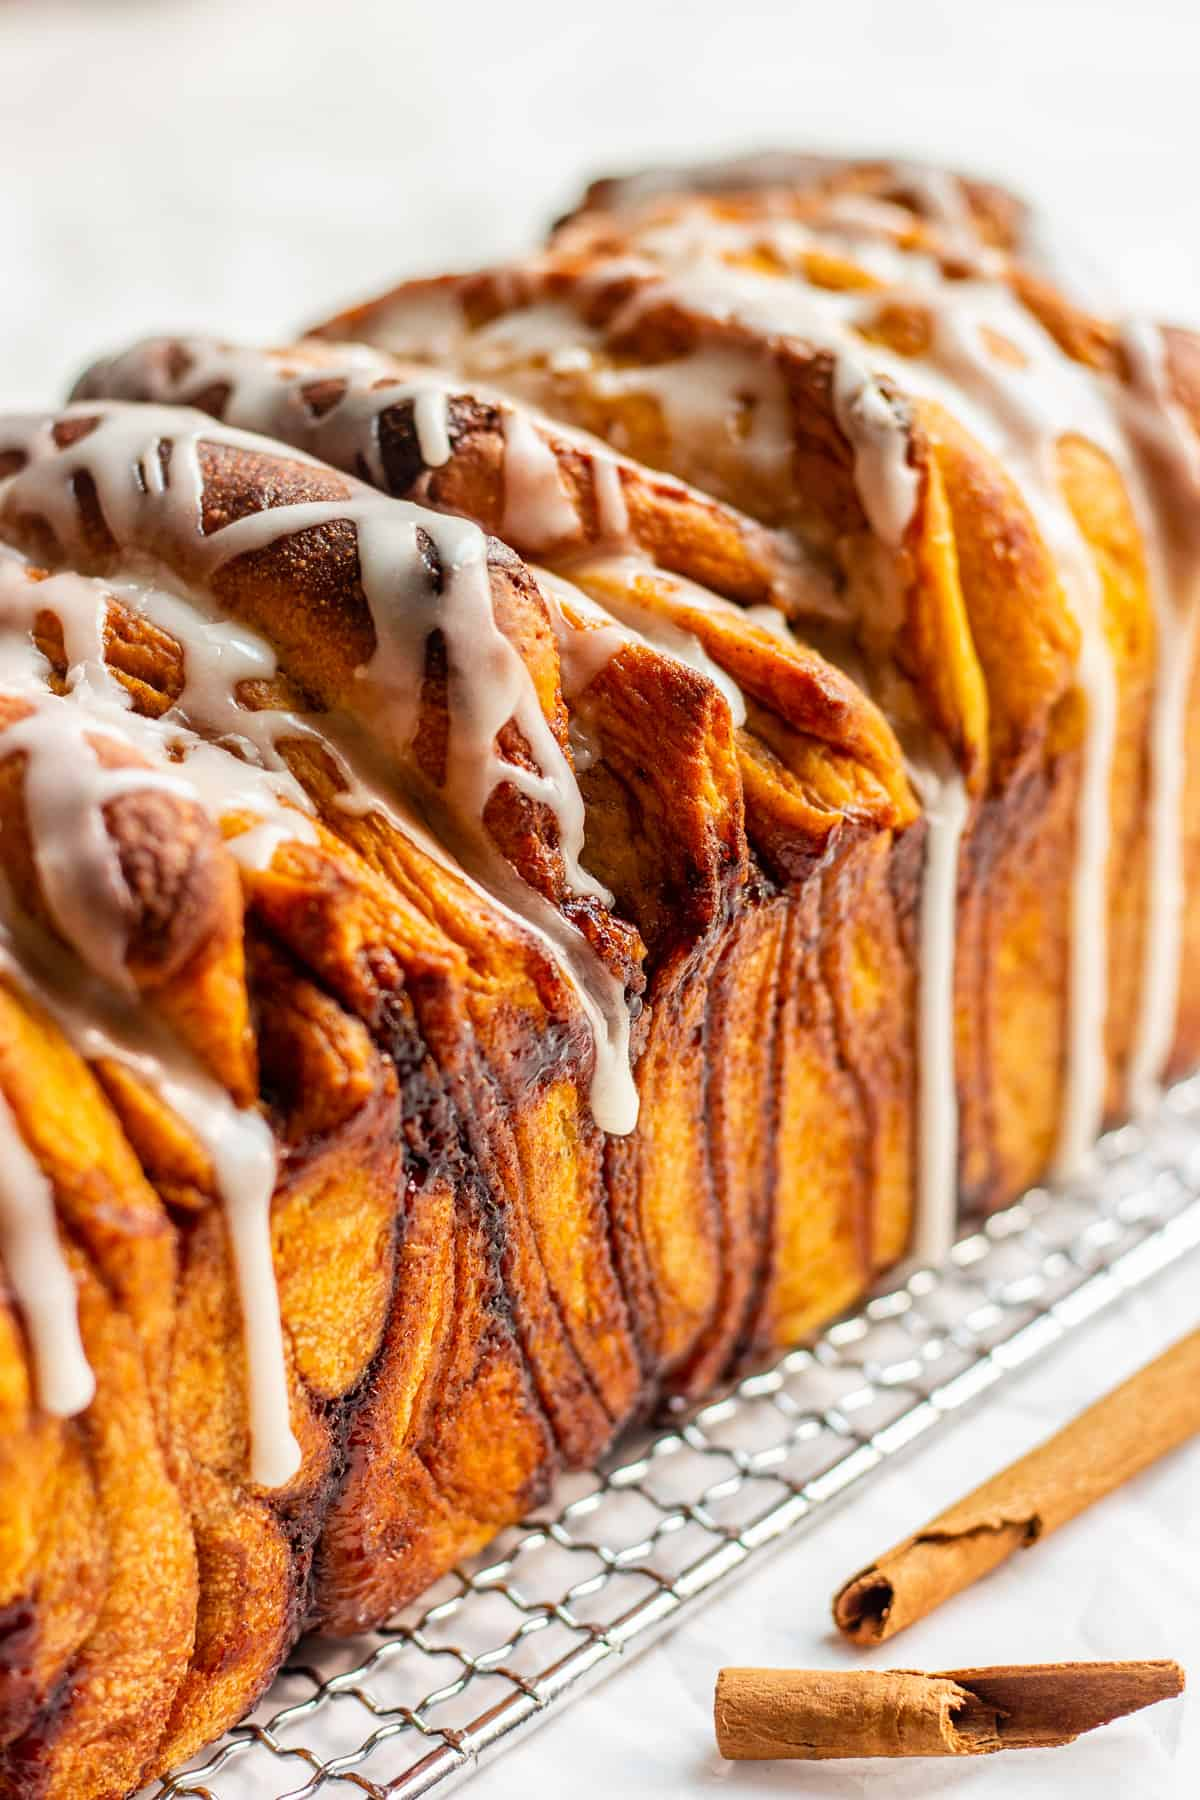 Side shot of a cinnamon sugar pull apart loaf on a wire rack against a white background